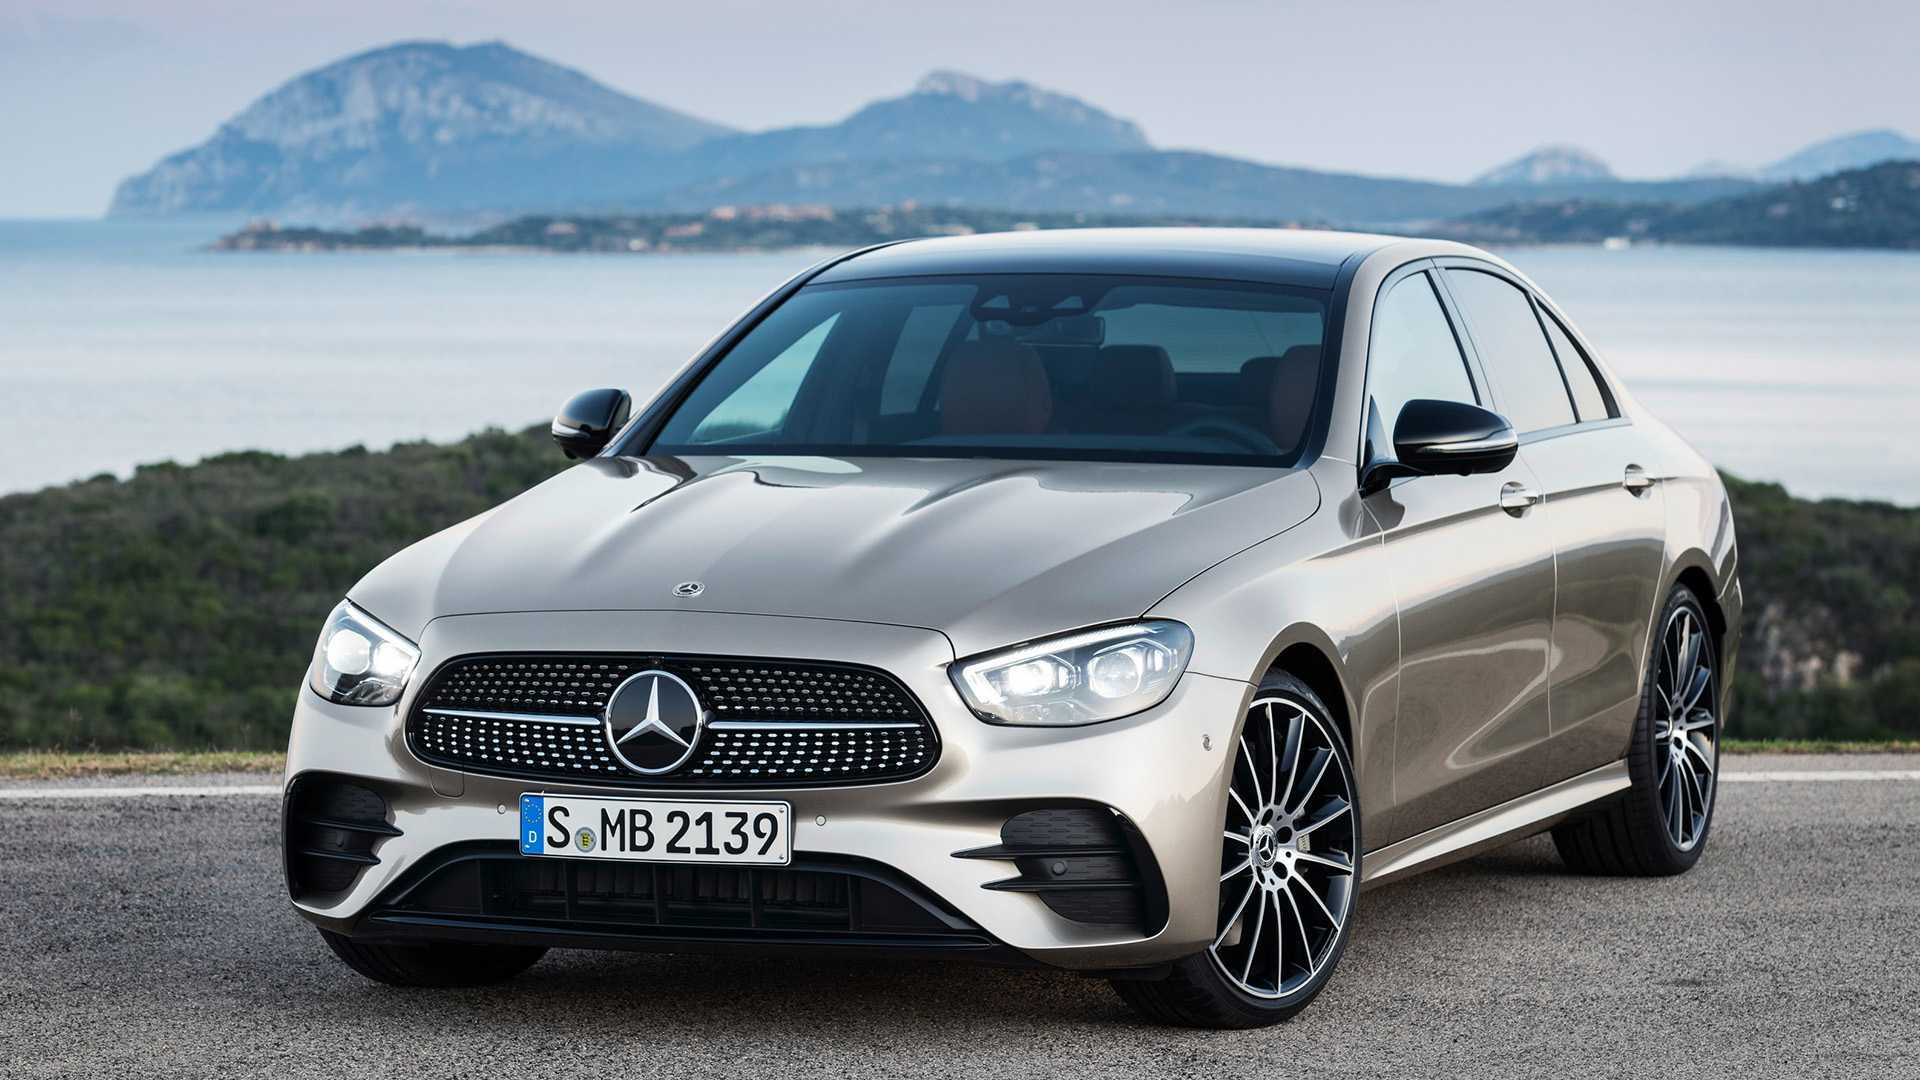 Refreshed 2021 Mercedes-Benz E-Class Starts At $54,250, E63 At $107,500